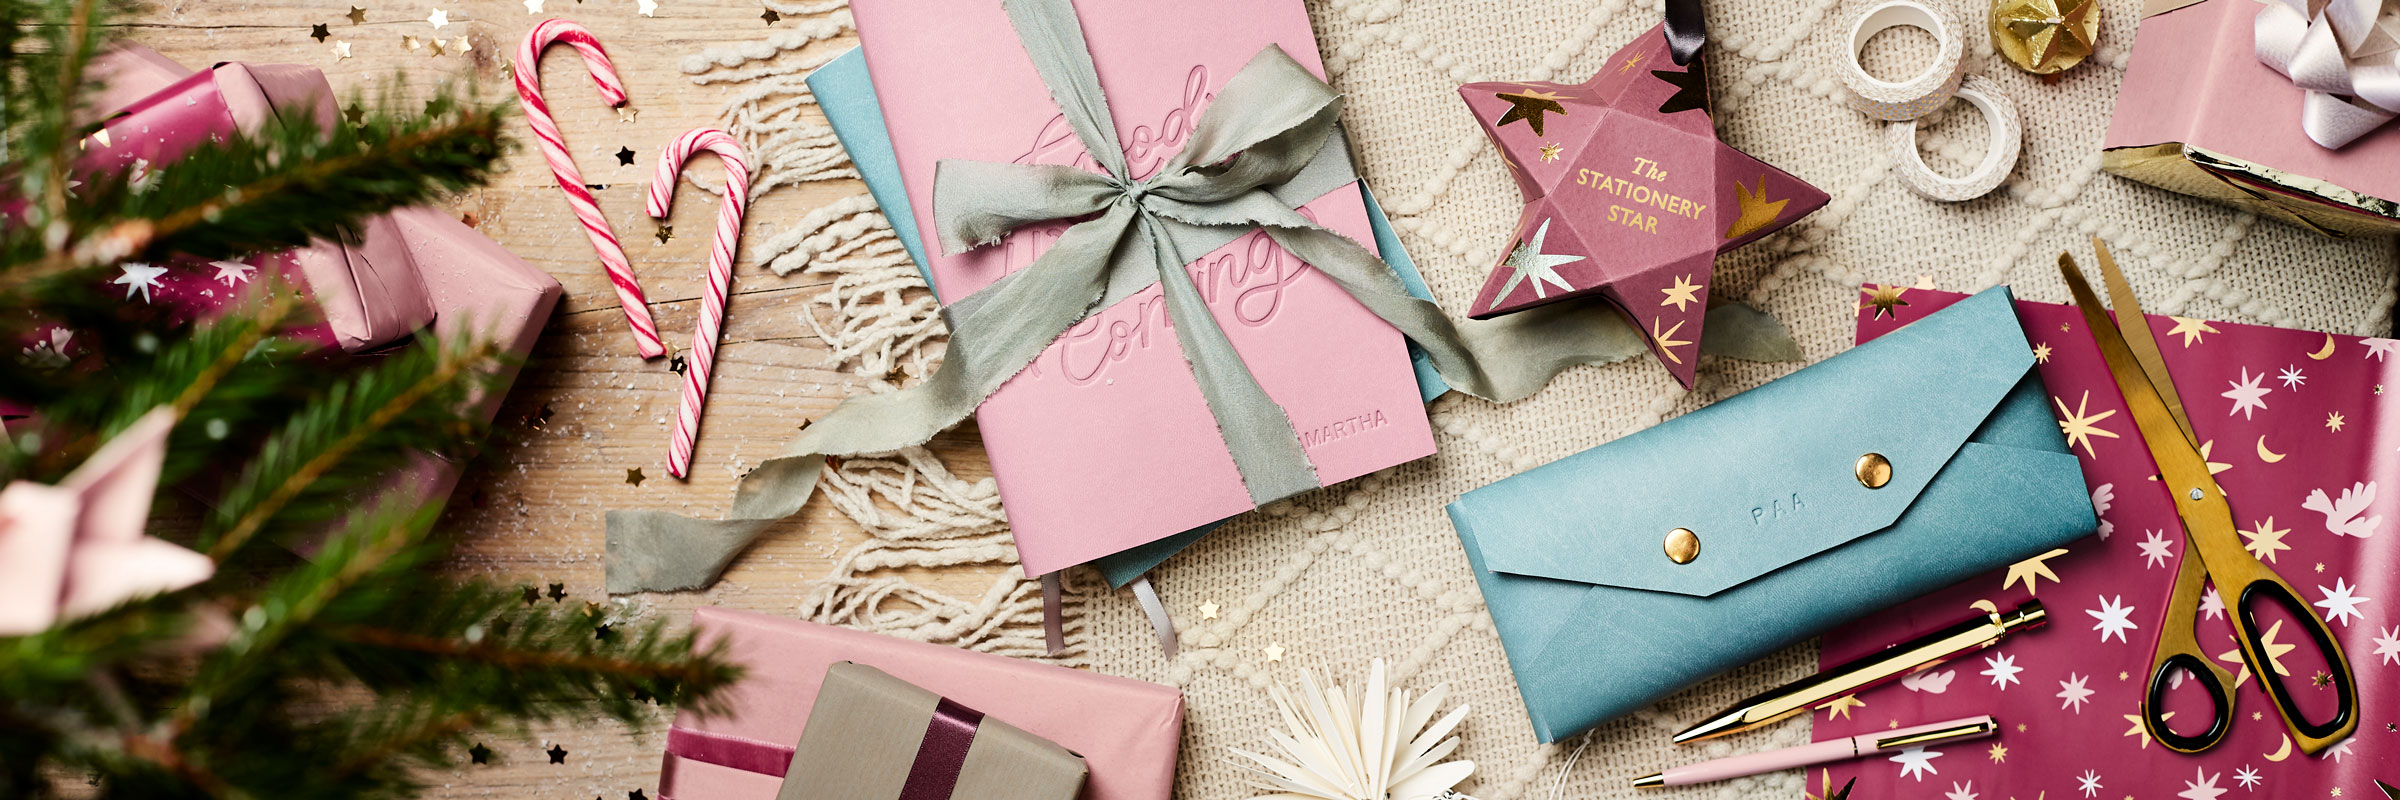 Martha Brook Christmas Gifts Personalised Stationery